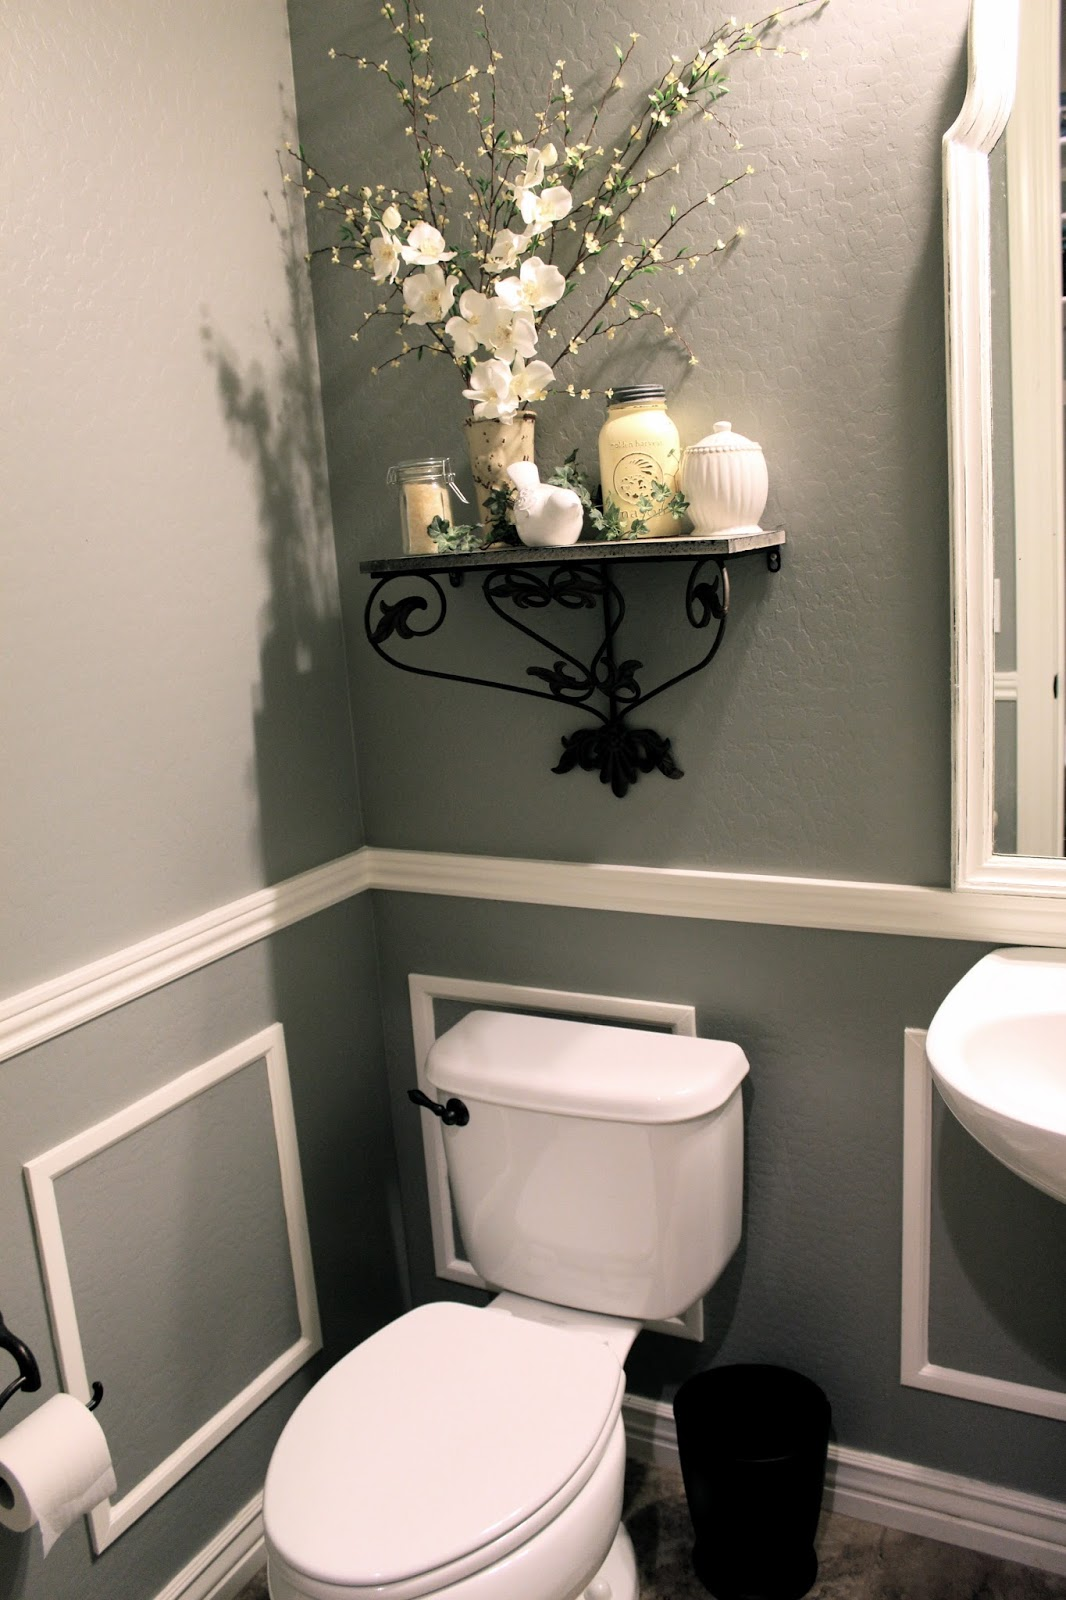 Little bit of paint thrifty thursday bathroom reveal - Half bathroom decorating ideas for small bathrooms ...